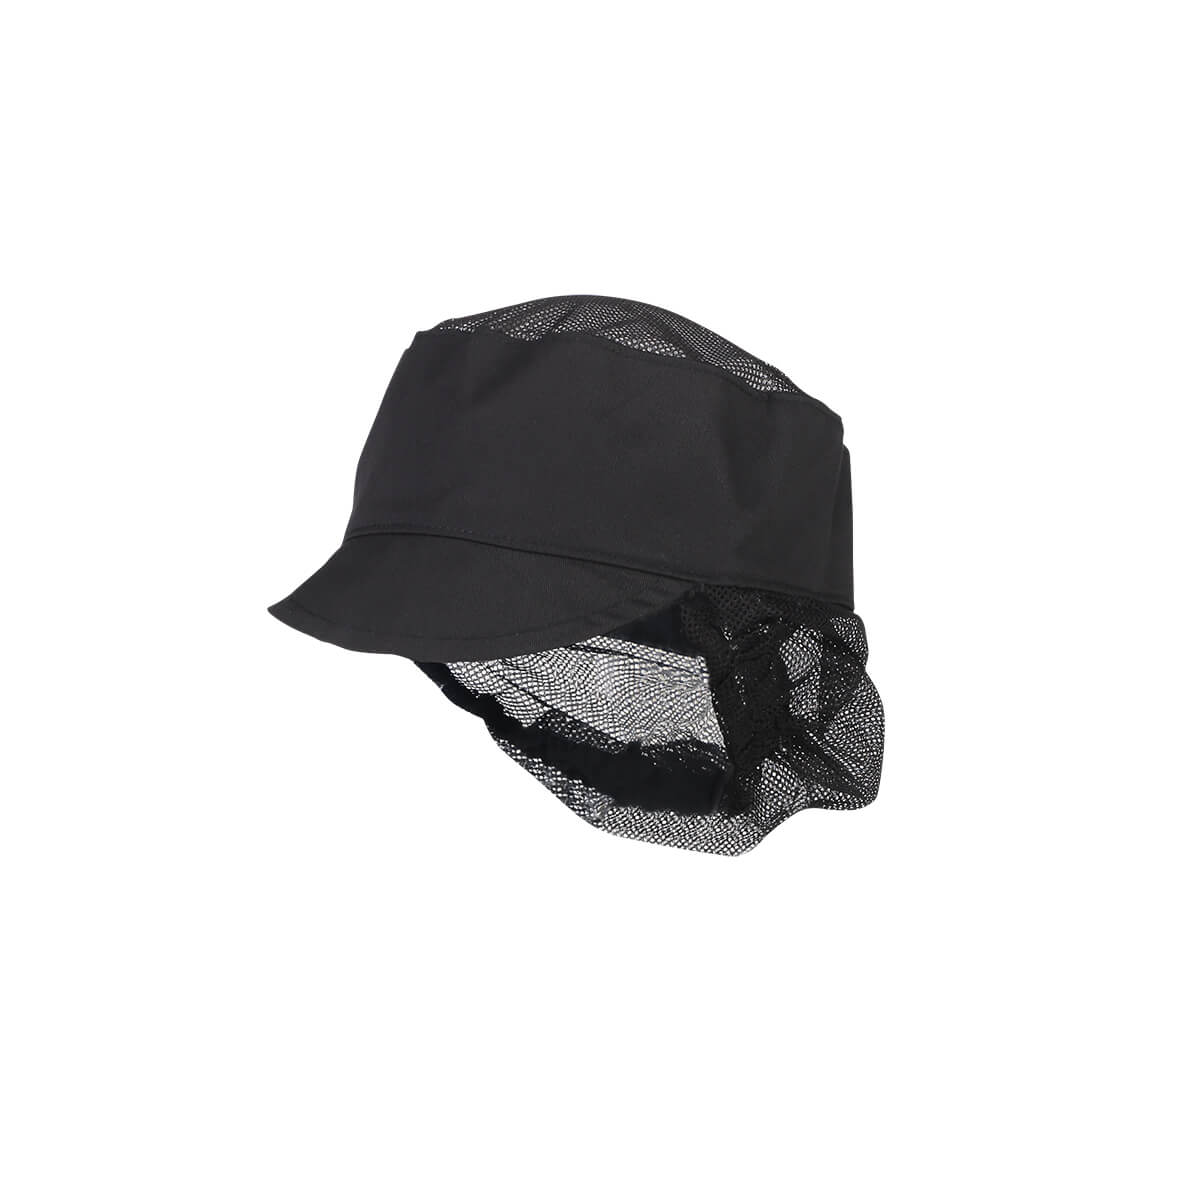 Hat with mask for kitchen - product photography side shot